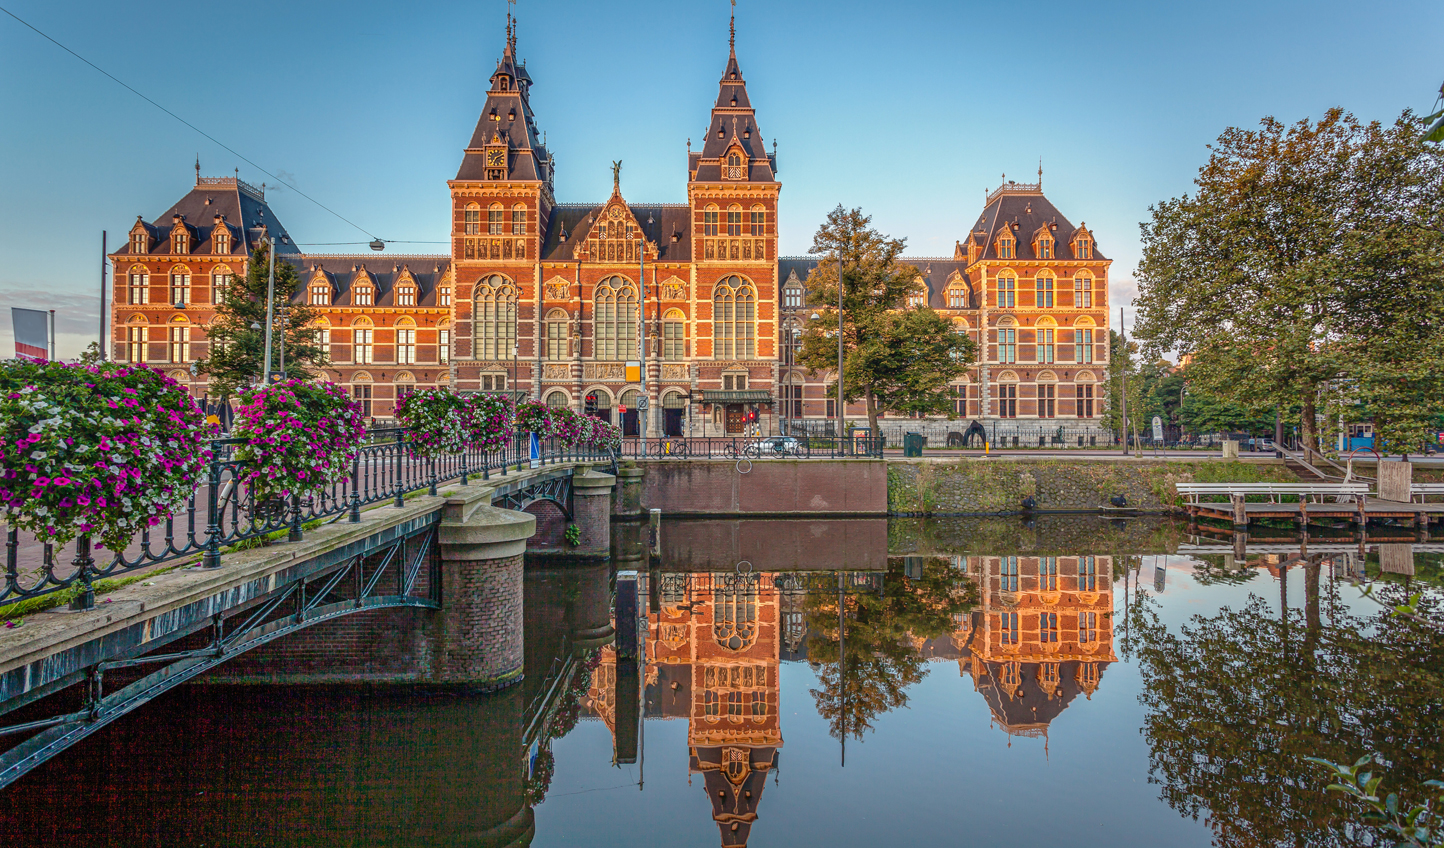 Discover Holland's national treasures at Rijksmuseum